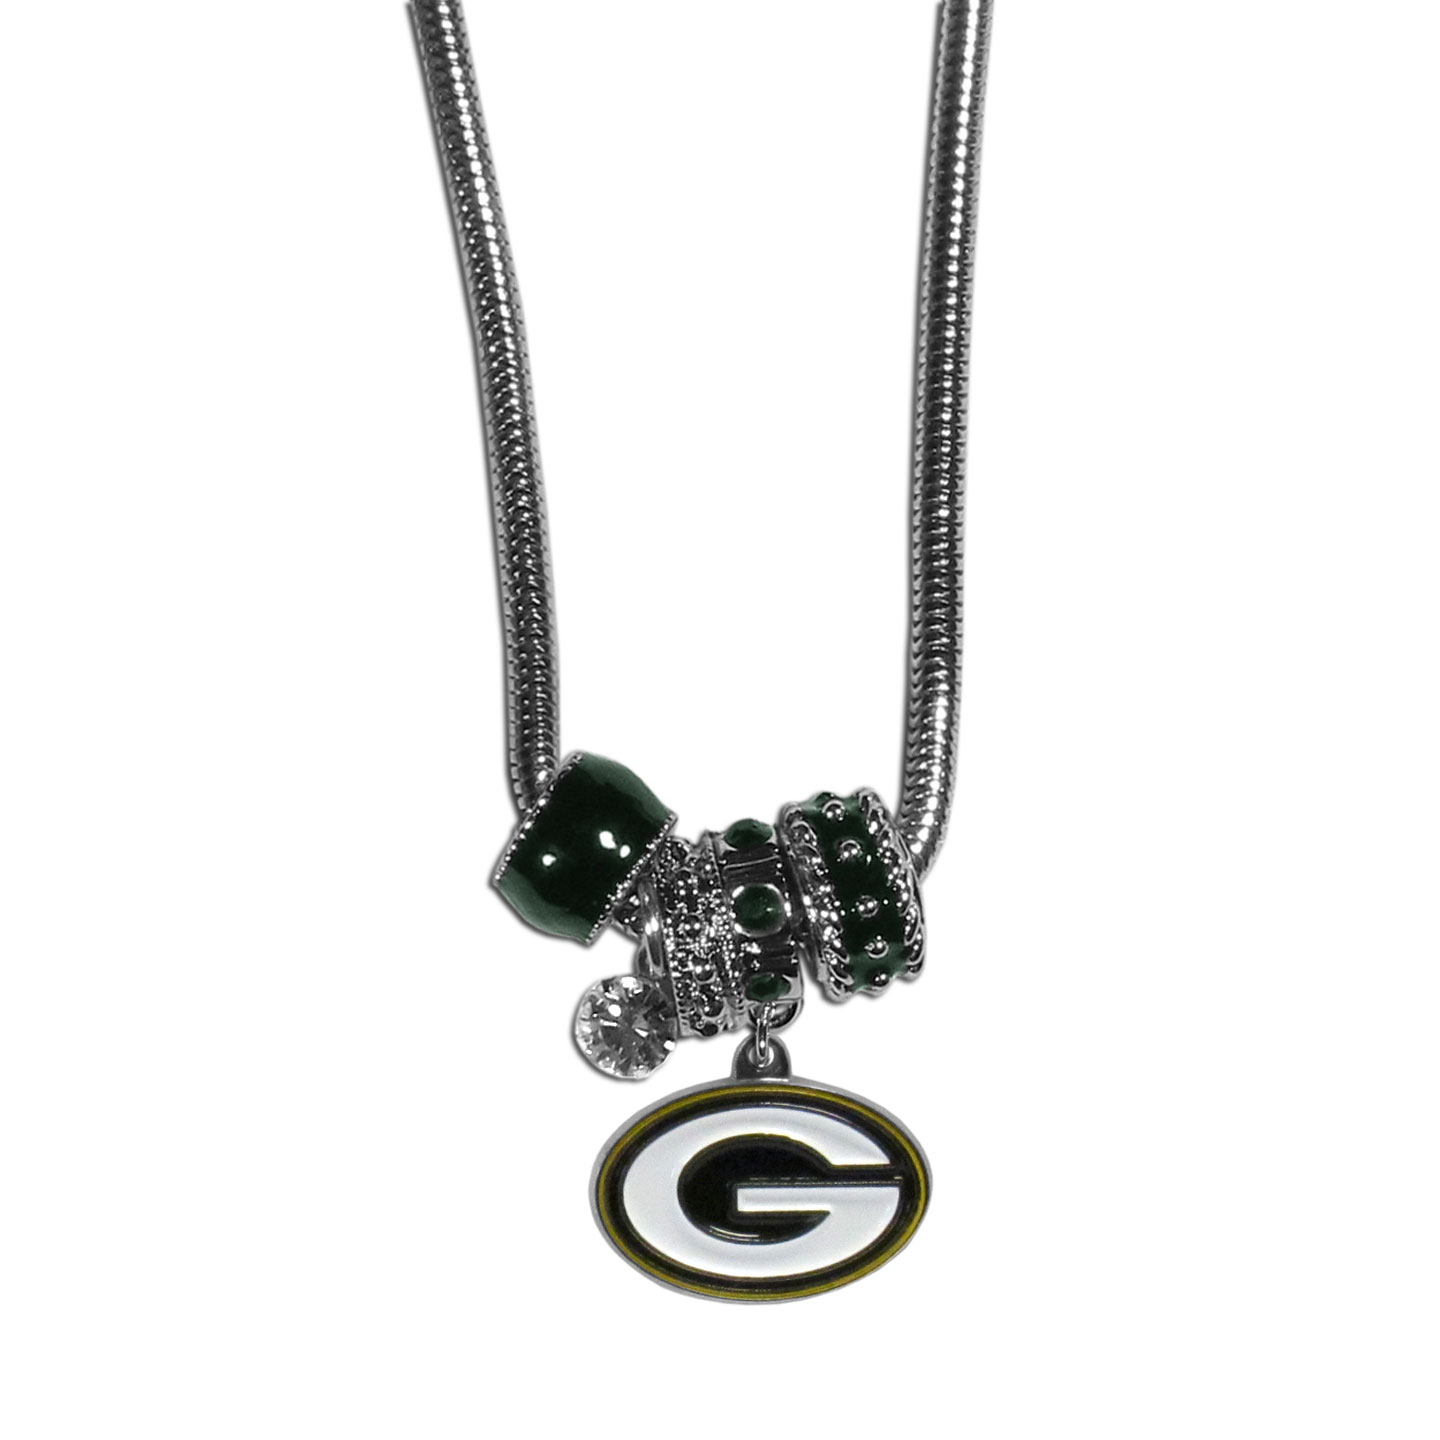 Green Bay Packers Euro Bead Necklace - We have combined the wildly popular Euro style beads with your favorite team to create our Green Bay Packers bead necklace. The 18 inch snake chain features 4 Euro beads with enameled team colors and rhinestone accents with a high polish, nickel free charm and rhinestone charm. Perfect way to show off your team pride.